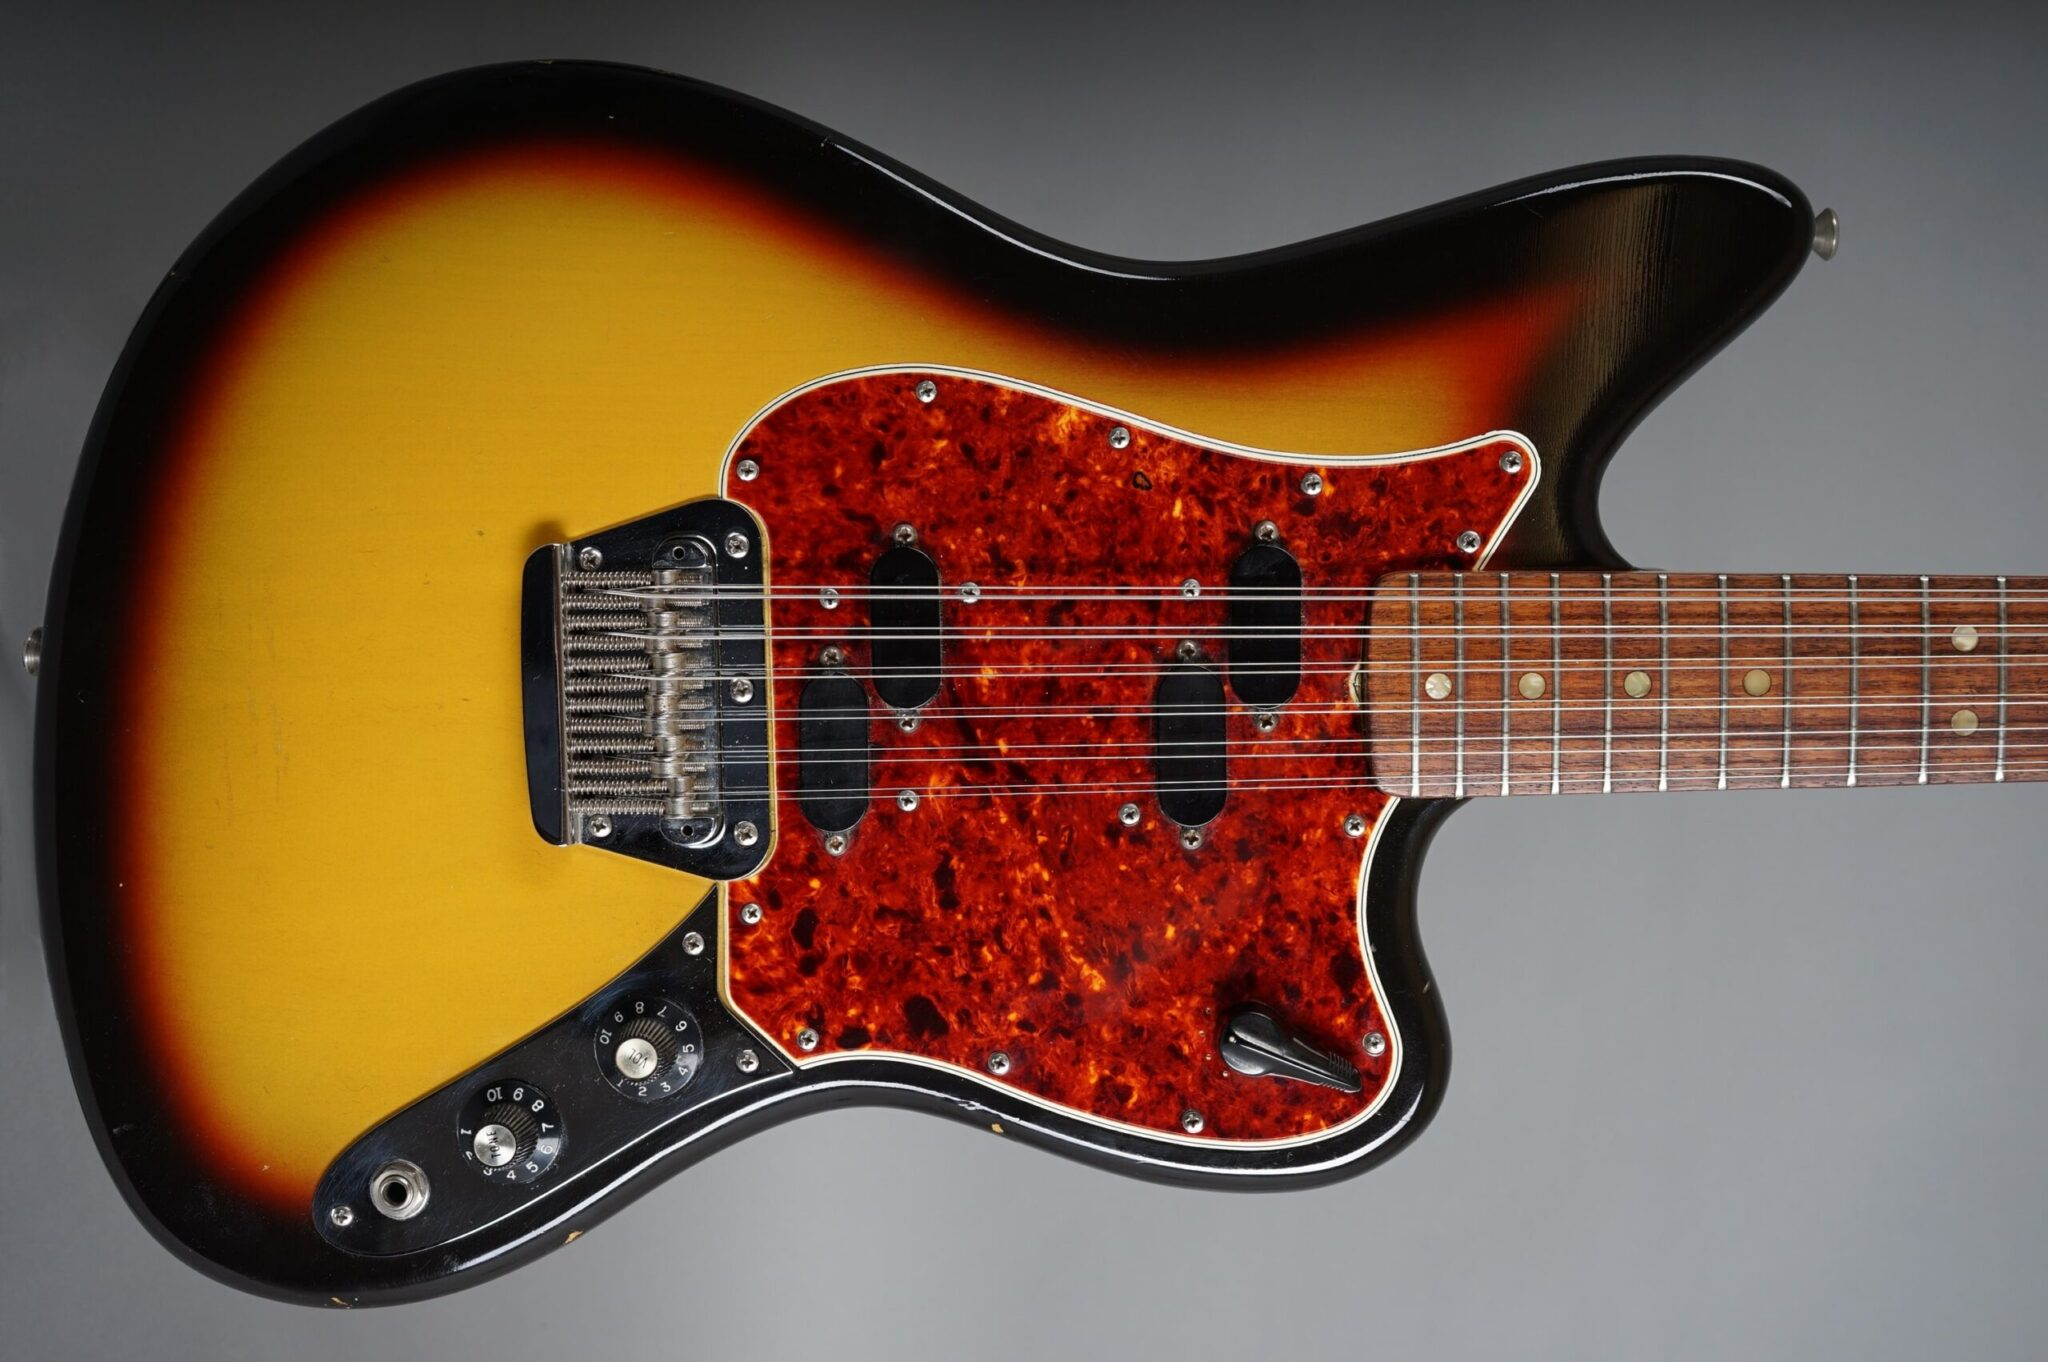 https://guitarpoint.de/app/uploads/products/1966-fender-electric-xii-12-string-sunburst/1966-Fender-Electric-XII-3-tone-Sunburst-154282-2q-scaled-2048x1362.jpg